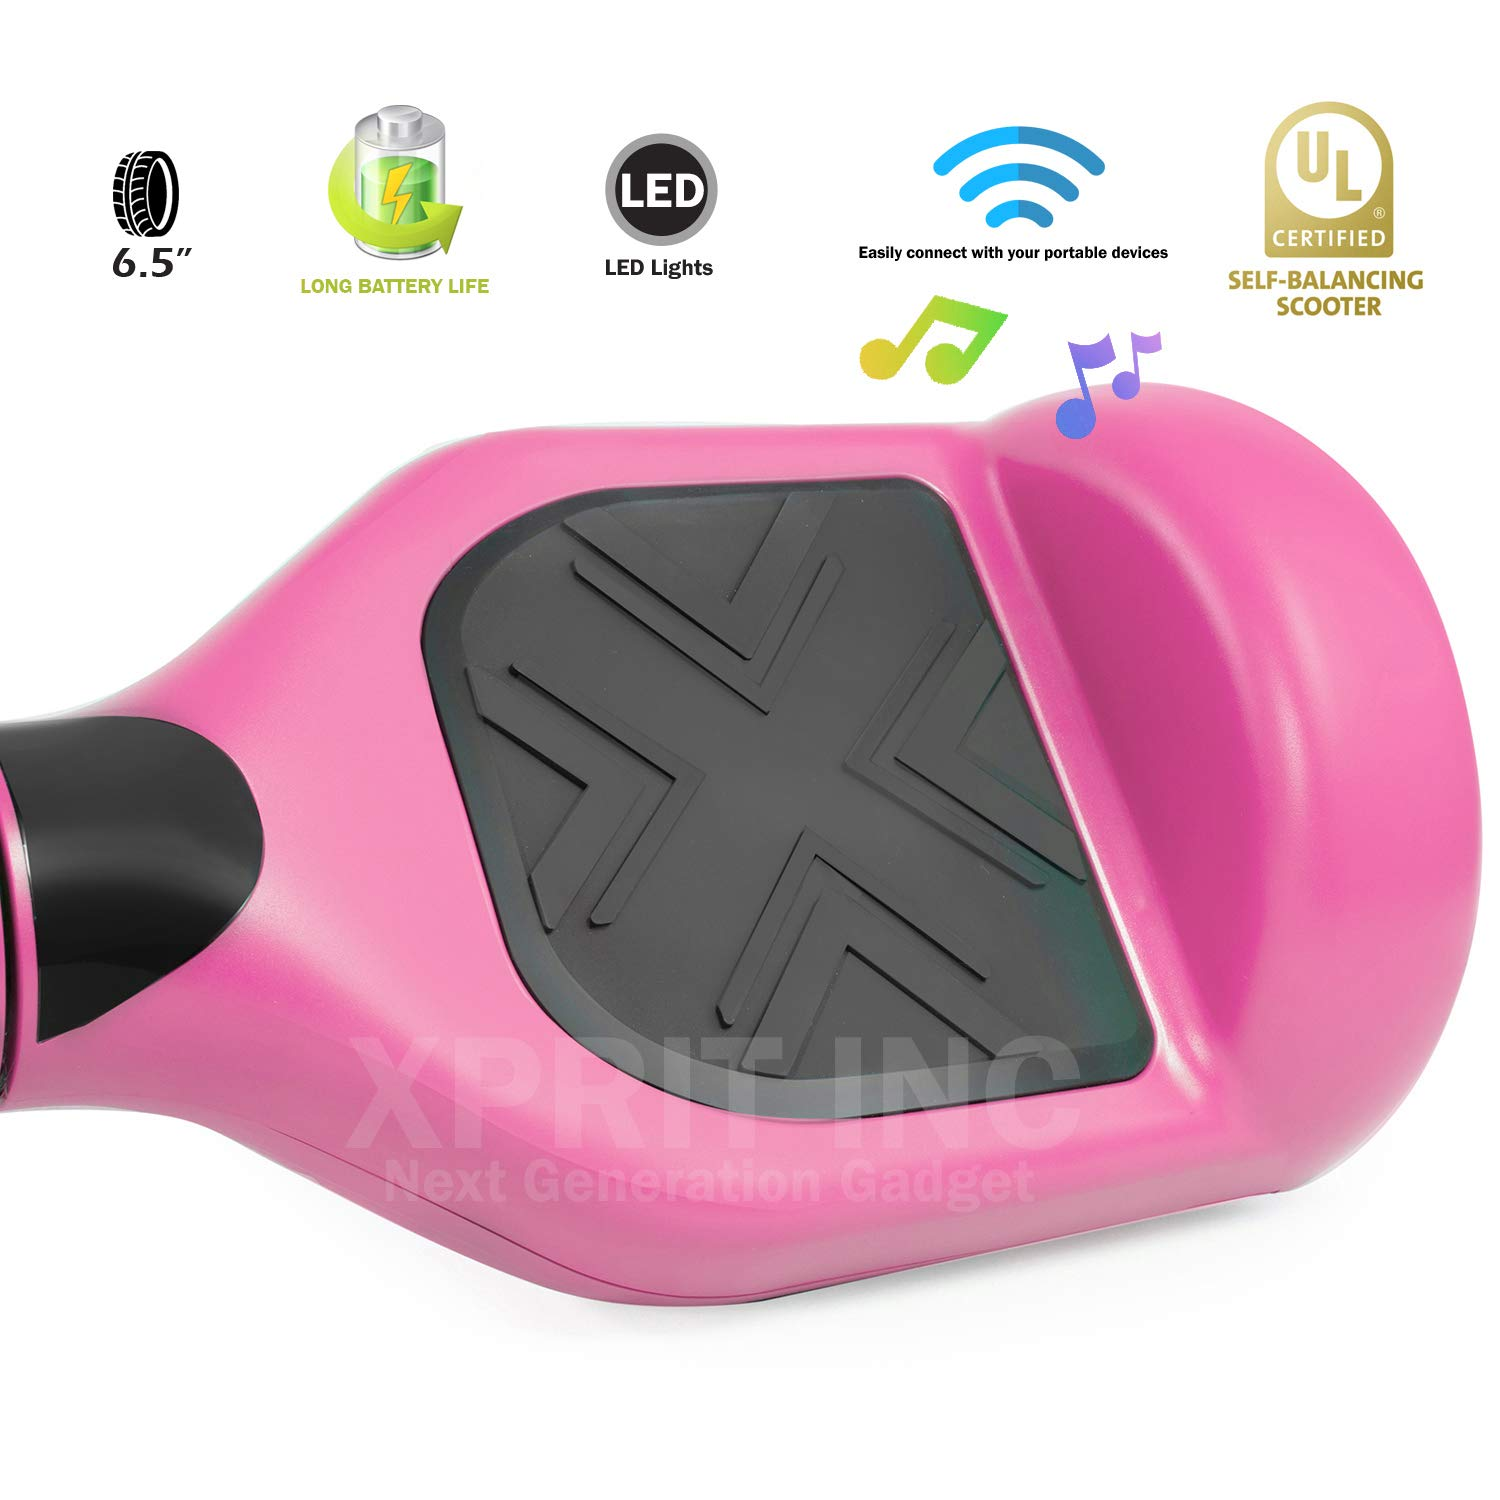 XPRIT Easter Sale Hoverboard w/Bluetooth Speaker (Pink) by XPRIT (Image #2)